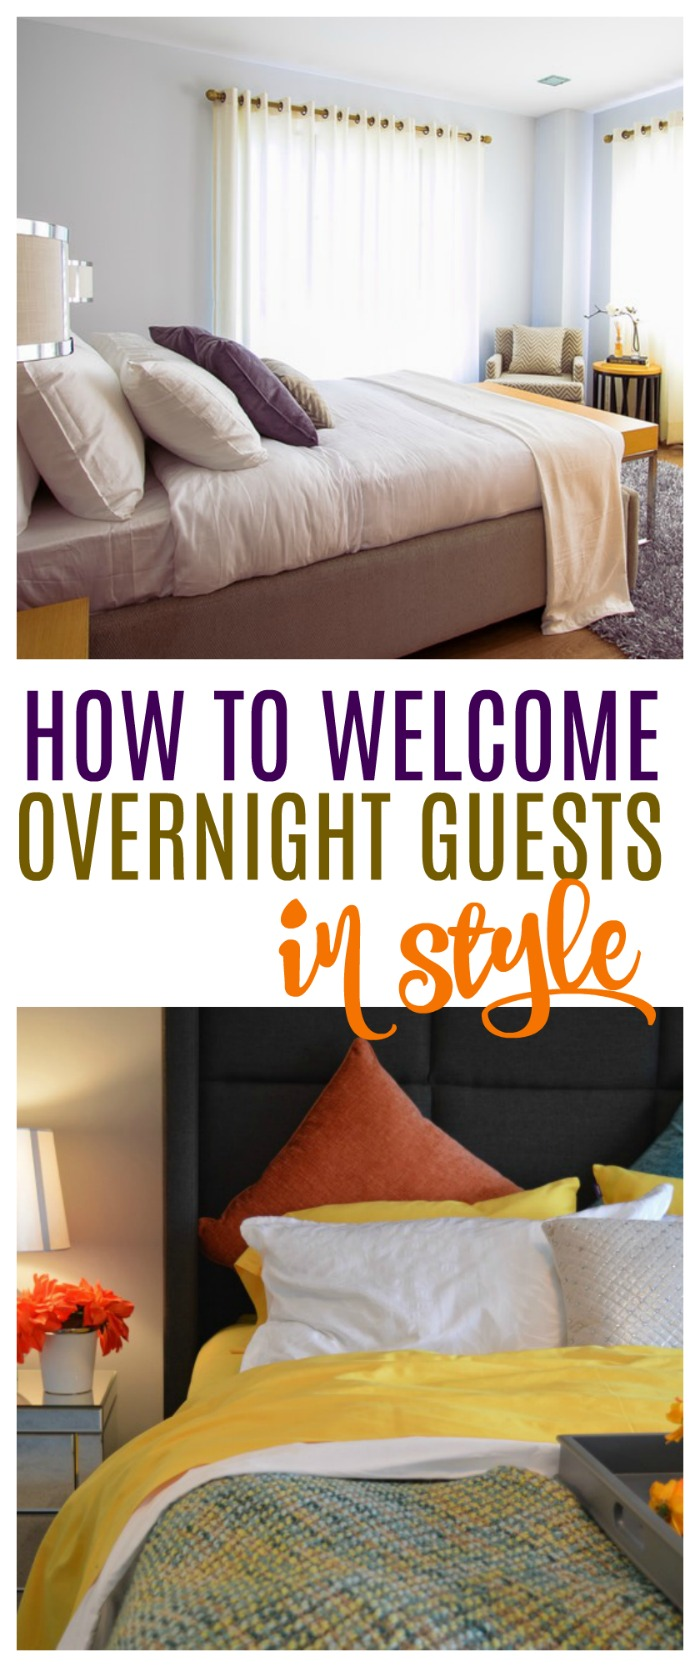 Welcoming Overnight Guests to Your Home in Style